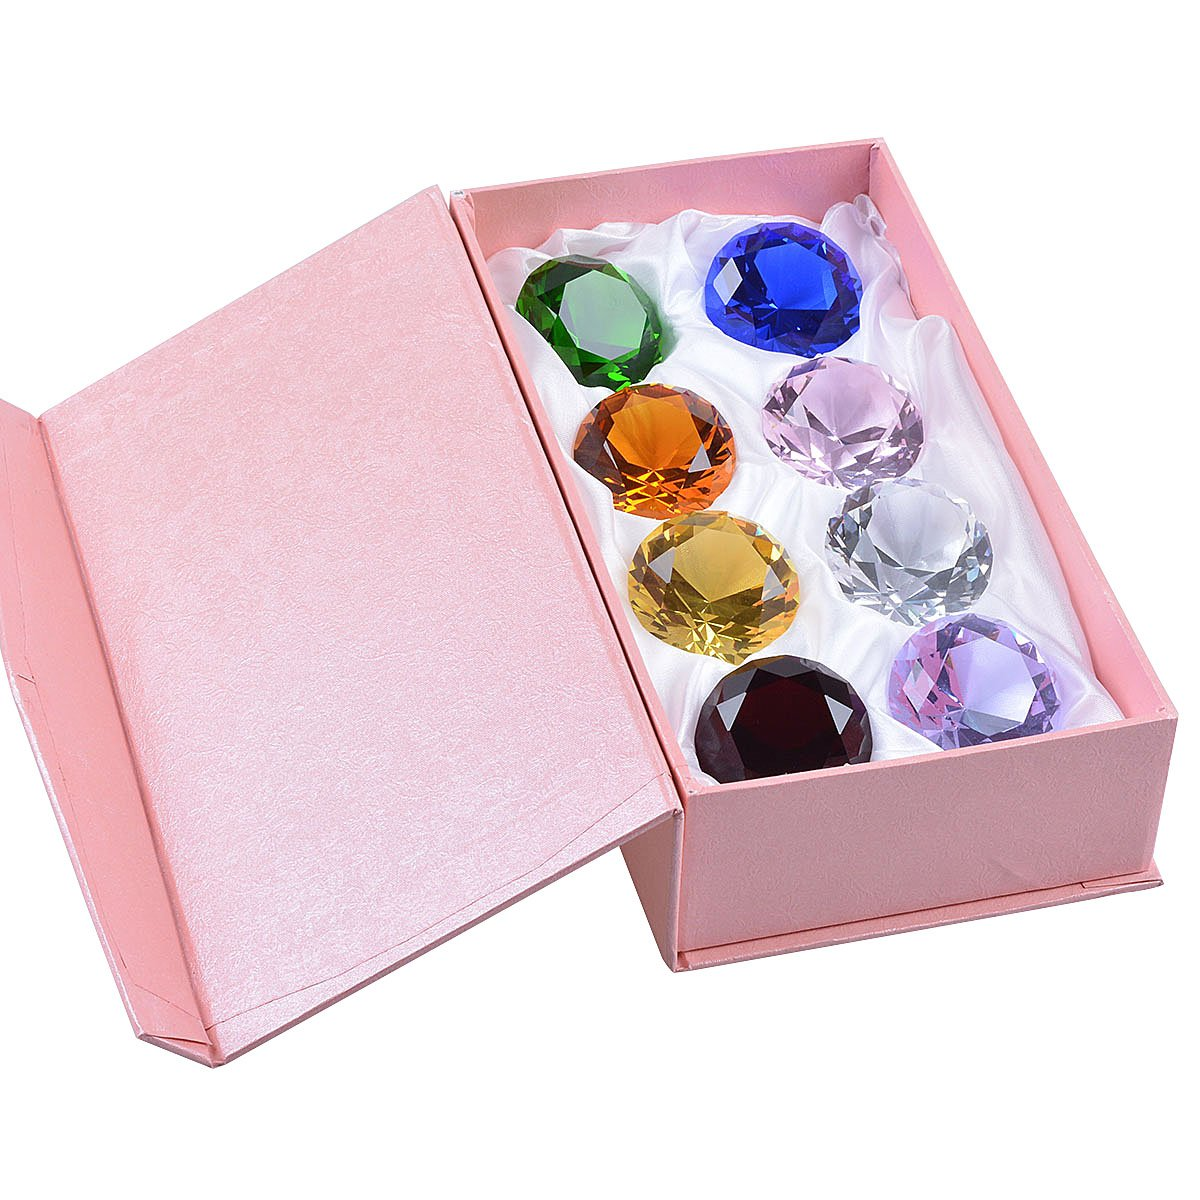 LONGWIN 50mm (2 in.) Crystal Diamond Paperweight Birthstone Table Decorations Multicolor Gift Box Packing